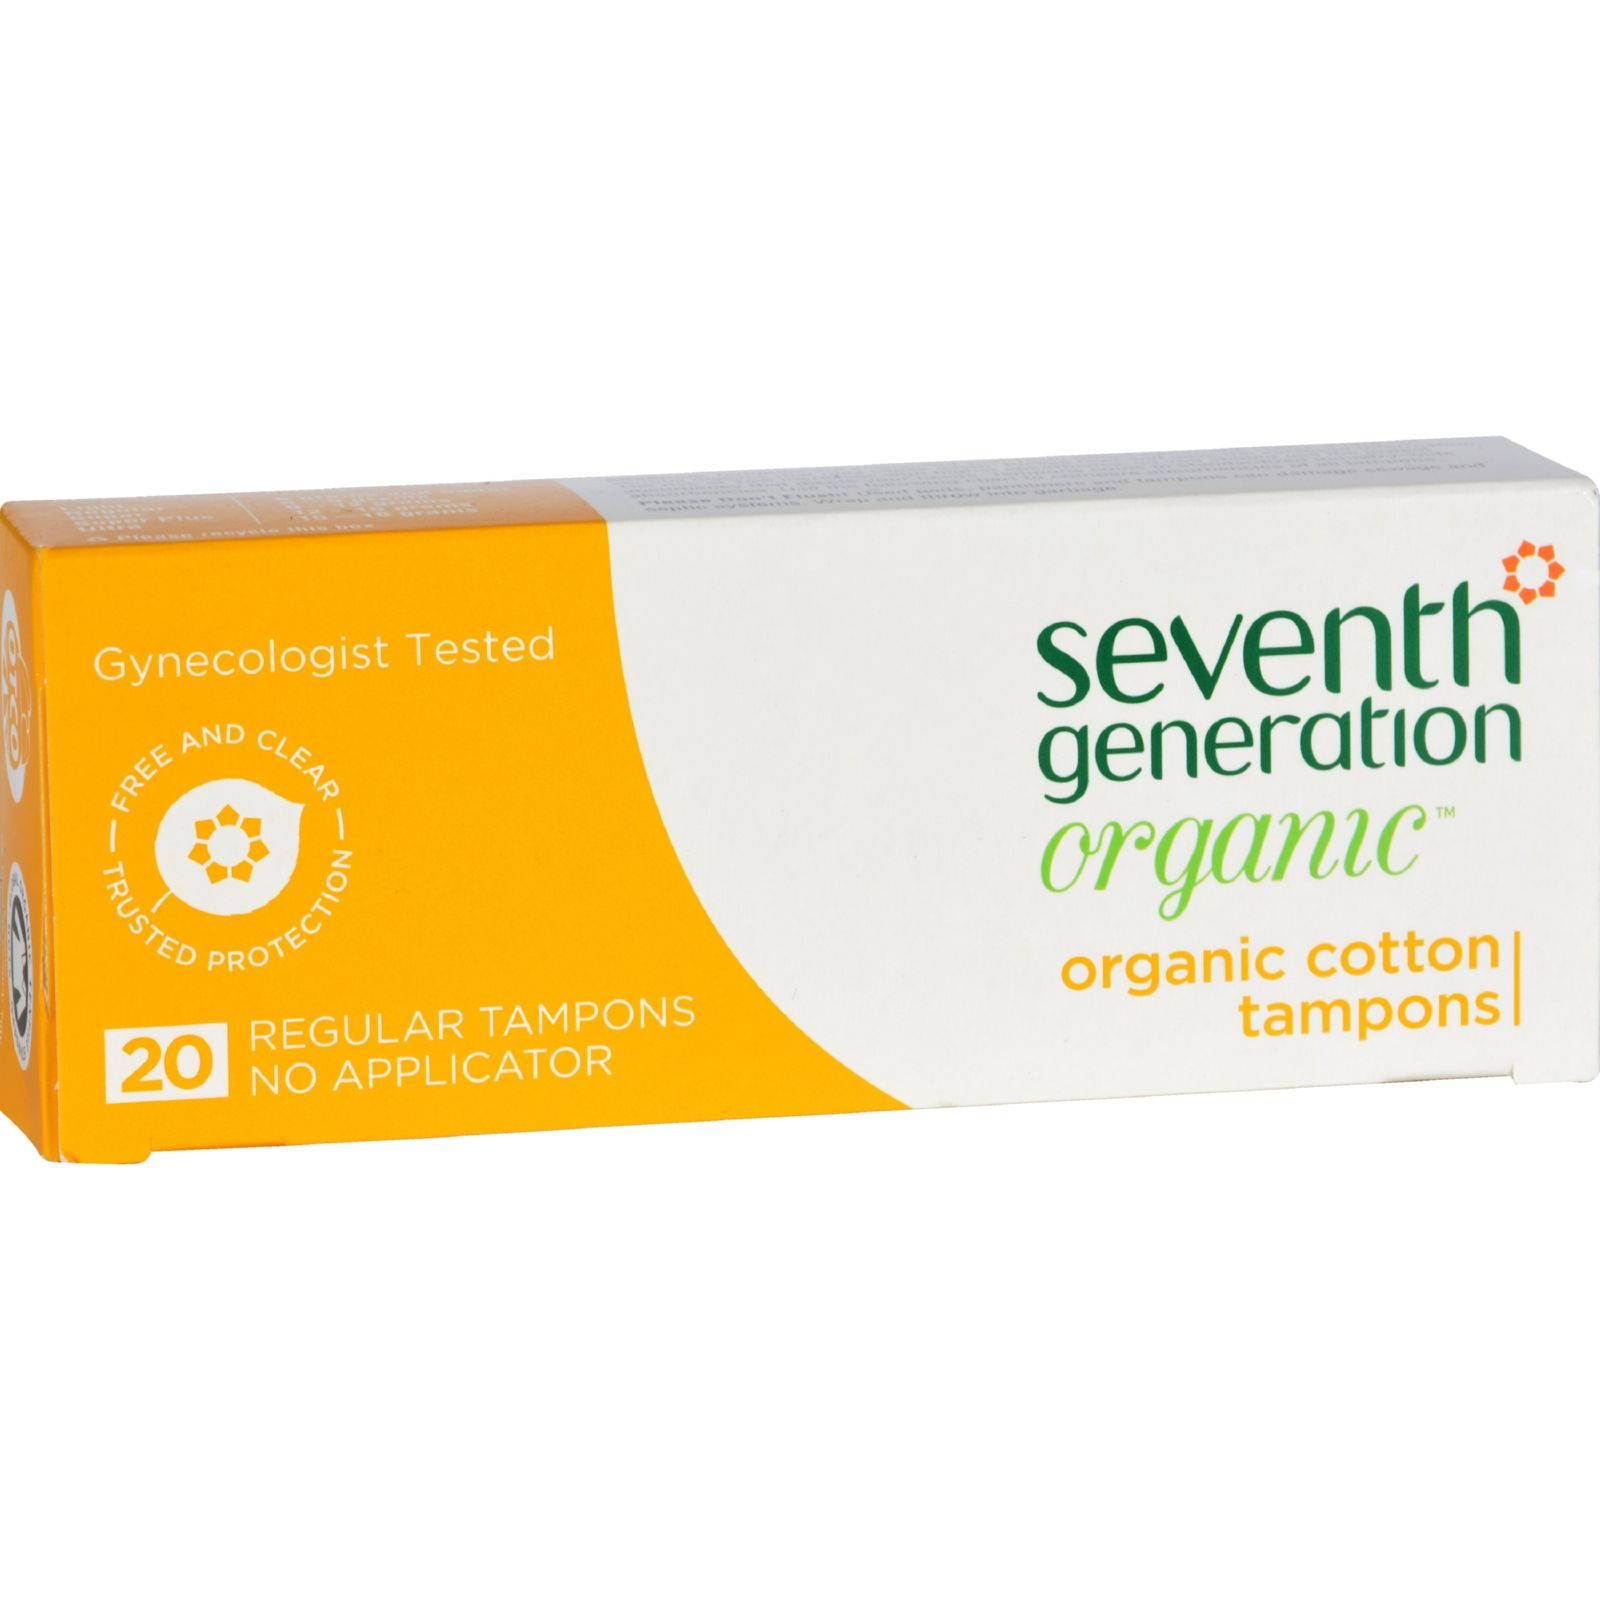 Seventh Generation Tampon - Organic - Regular - No Applicator - 20 Count